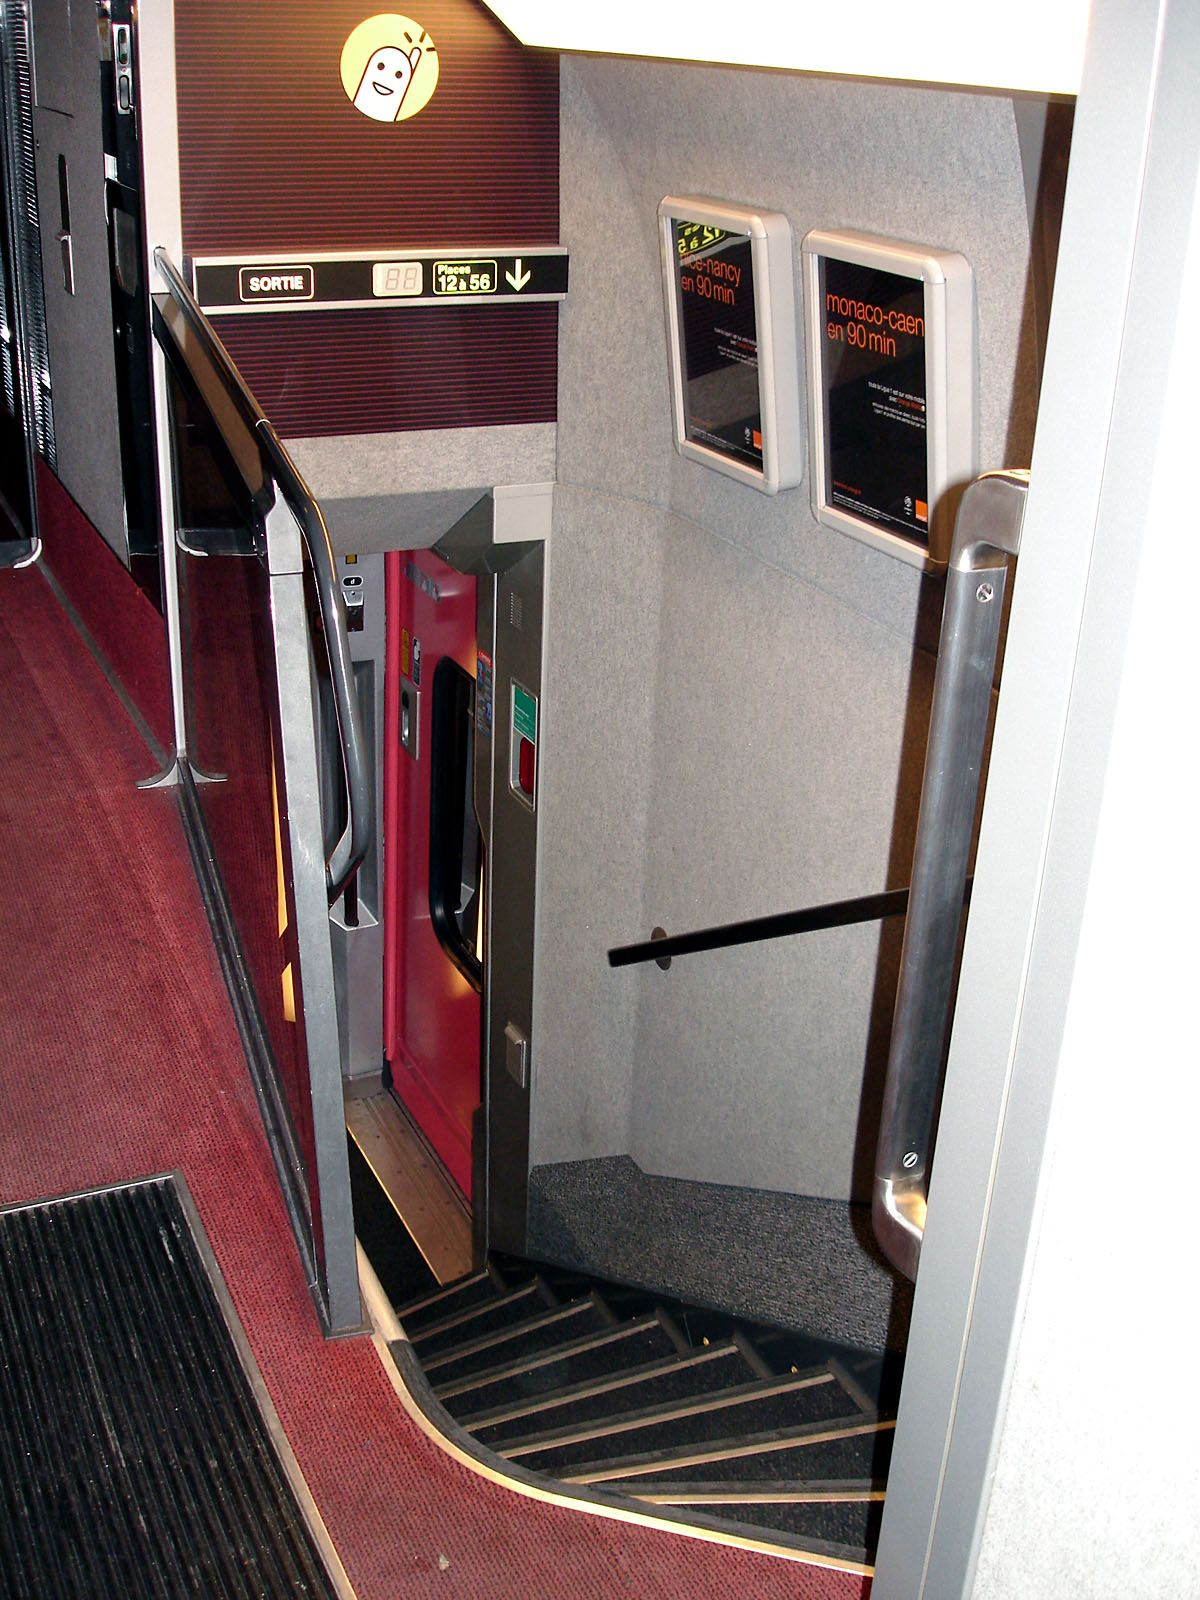 Design Interieur Tgv Escalier Du Tgv Duplex 1ere Classe Trains And Railways